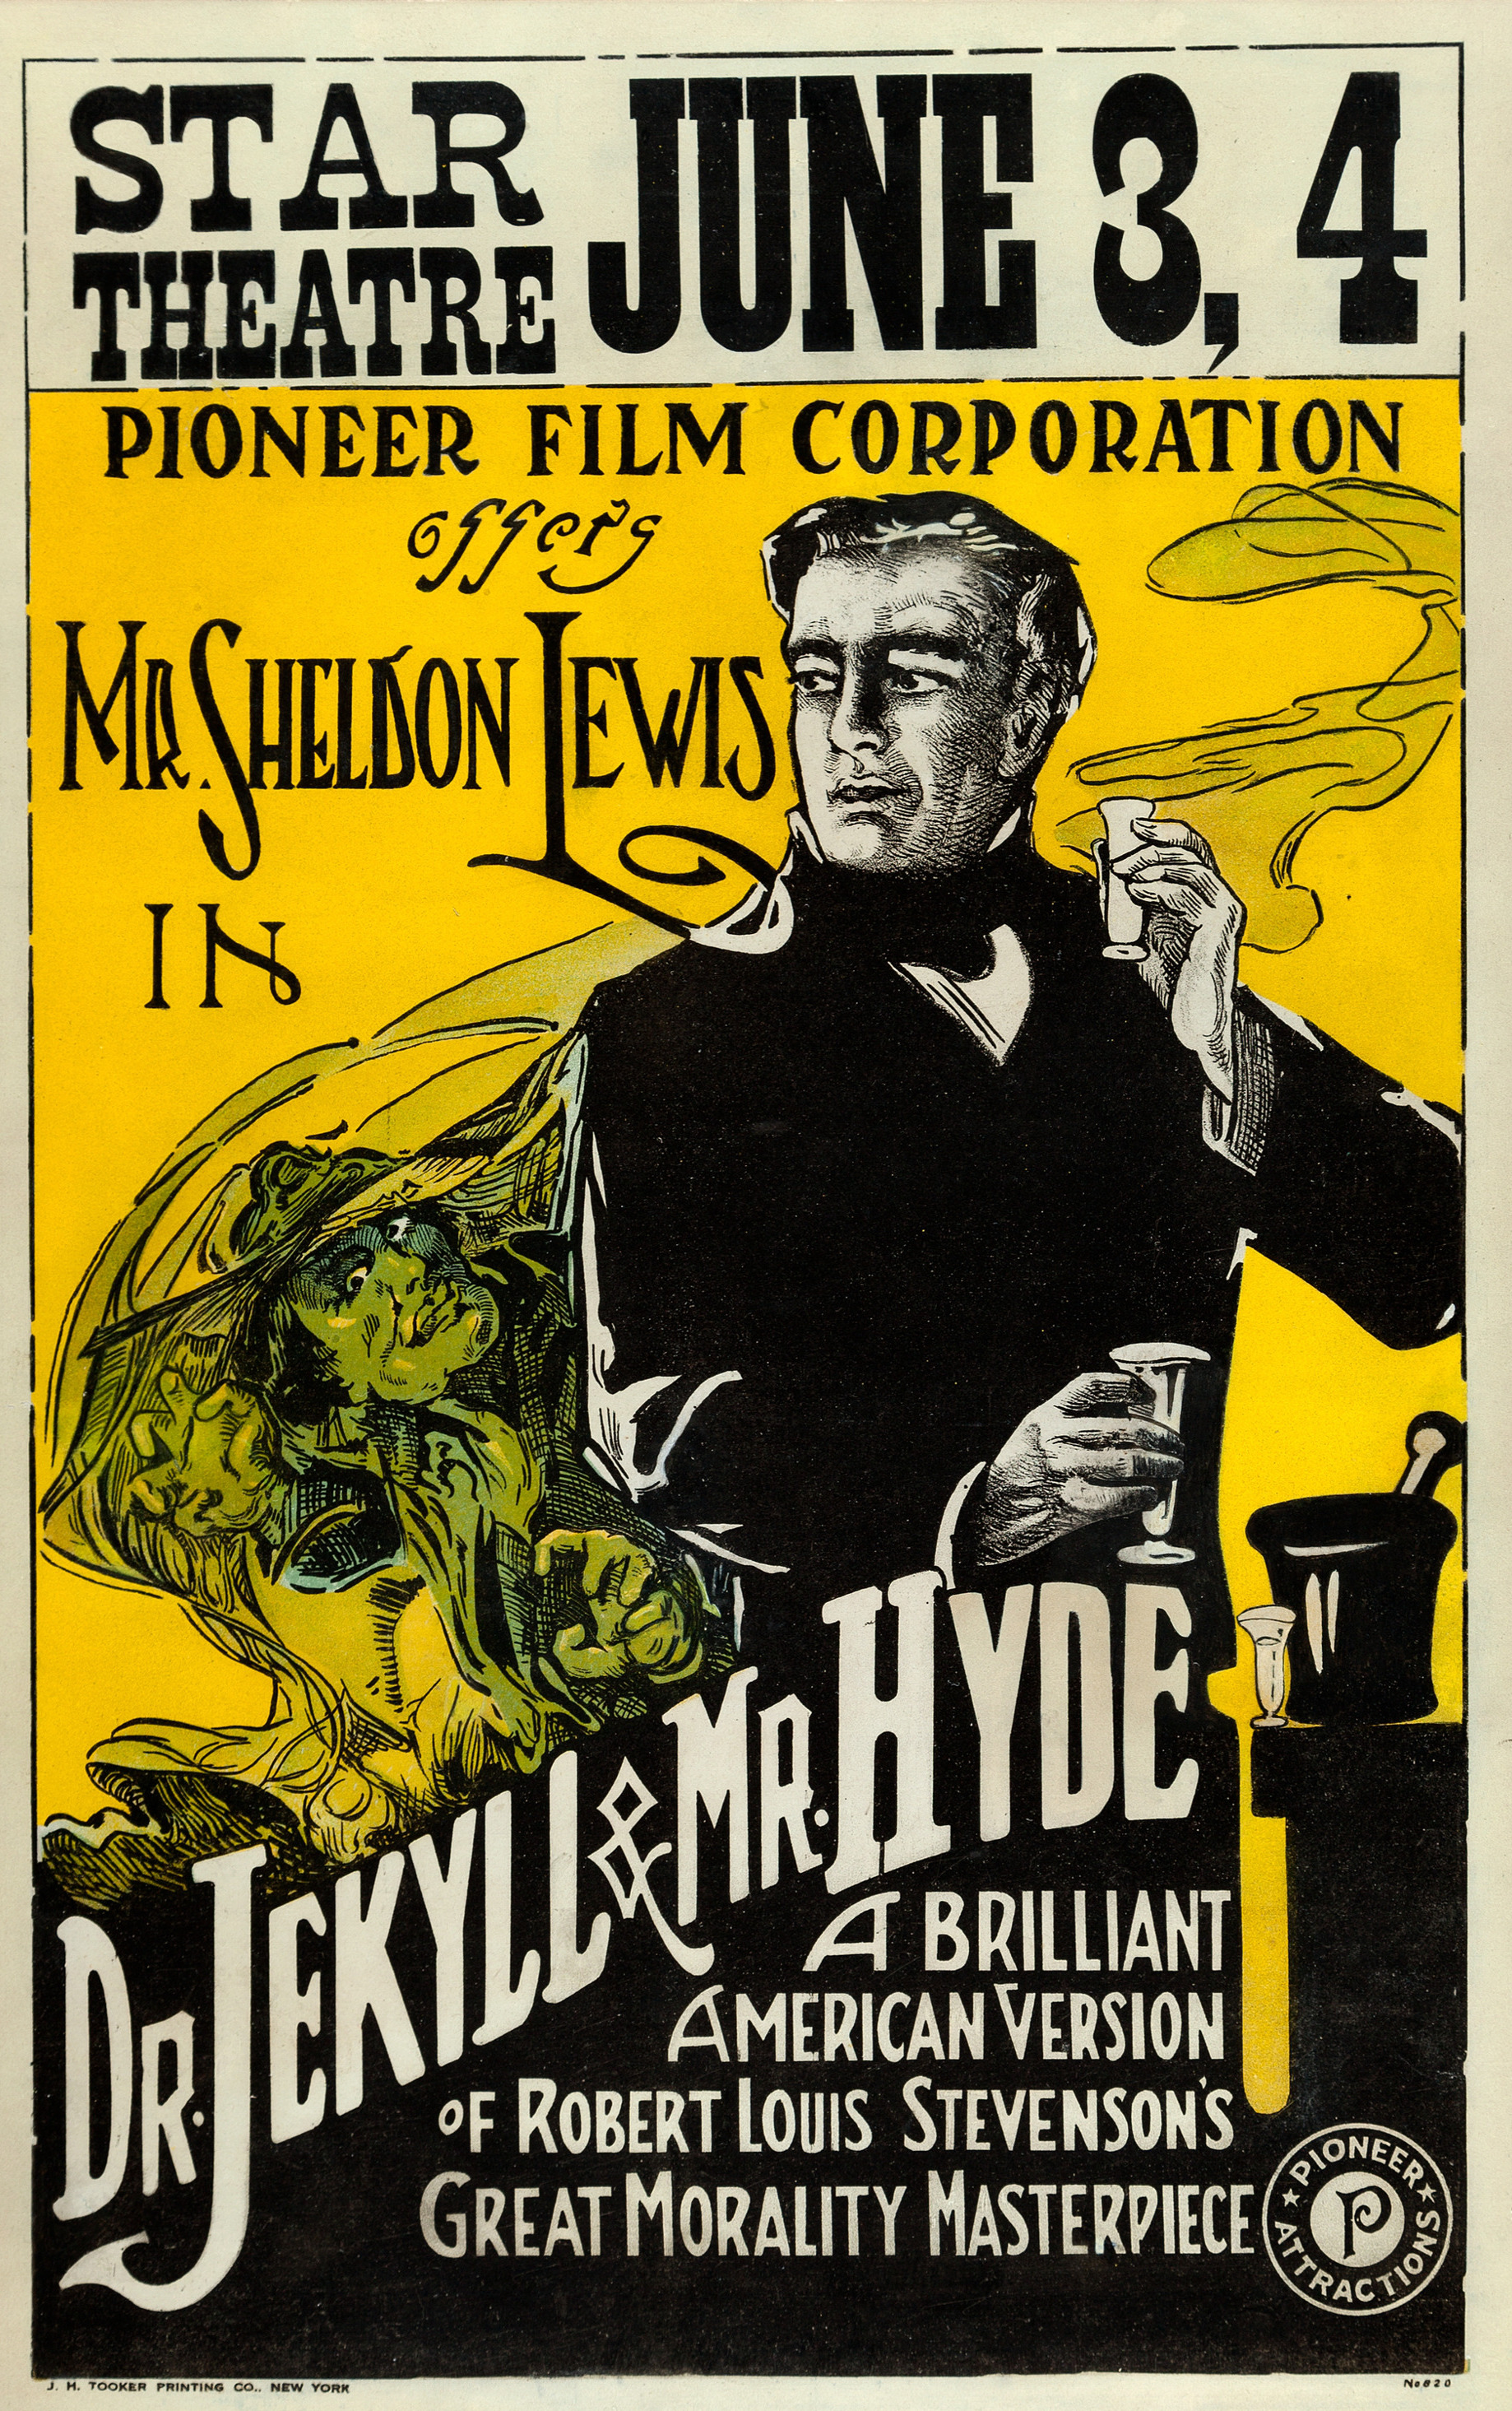 Gothic Elements in 'The Strange Case of Dr Jekyll and Mr Hyde'